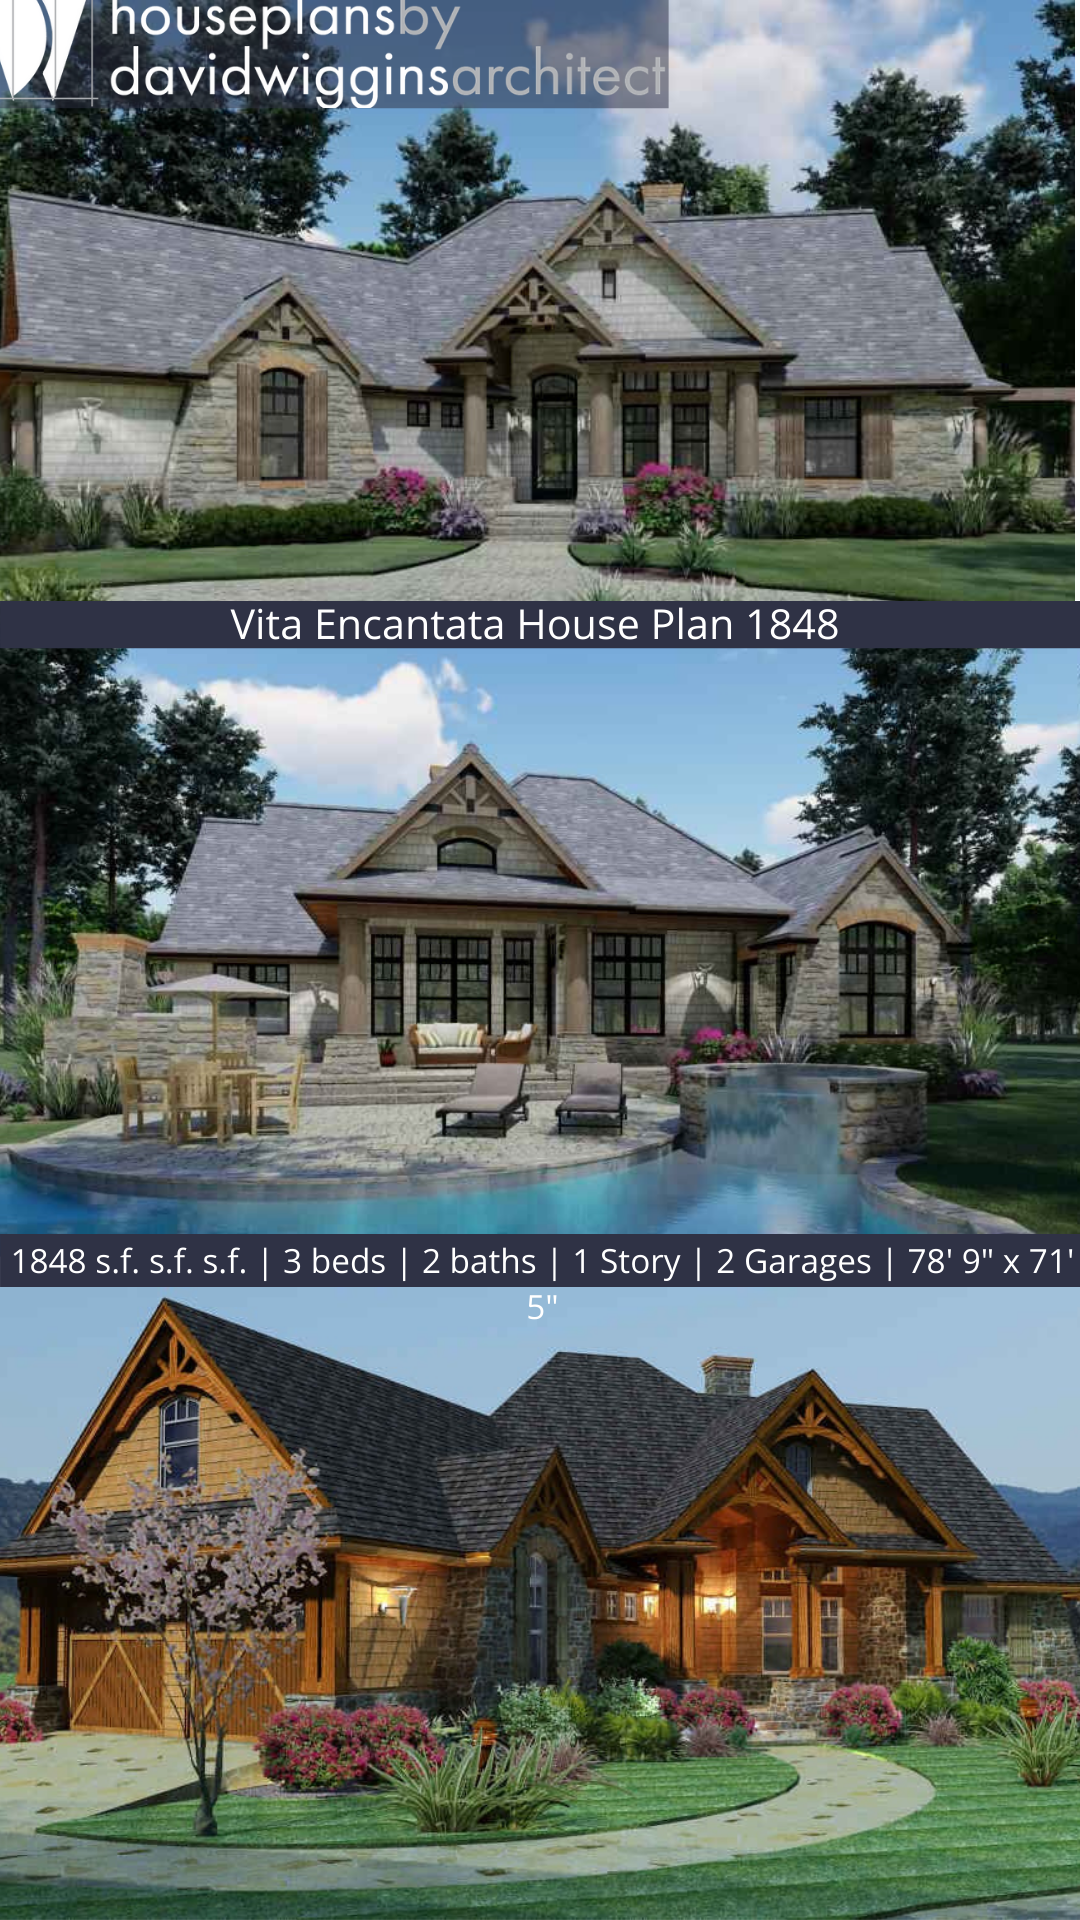 Vita Encantata House Plan 1848